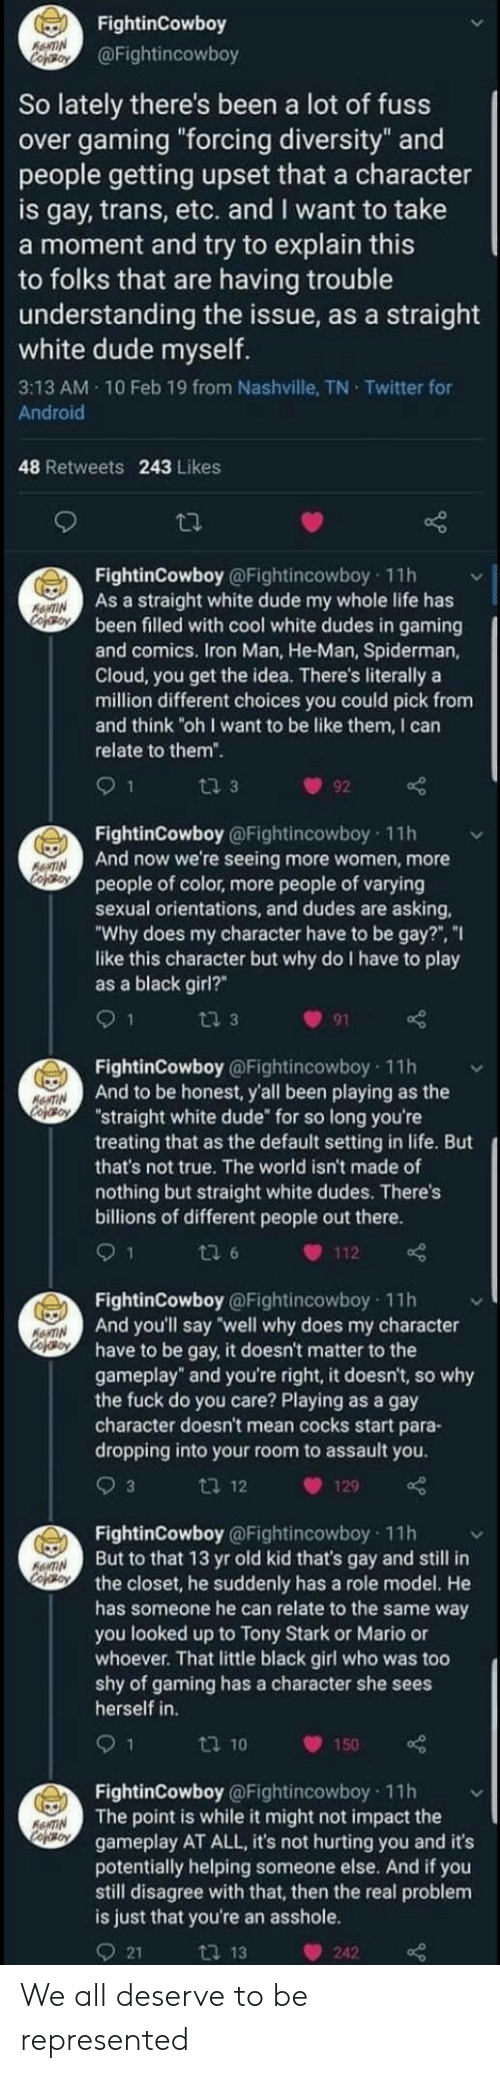 """10 Feb: FightinCowboy  AeNTIN  co Boy  @Fightincowboy  So lately there's been a lot of fuss  over gaming """"forcing diversity"""" and  people getting upset that a character  is gay, trans, etc. and I want to take  a moment and try to explain this  to folks that are having trouble  understanding the issue, as a straight  white dude myself.  3:13 AM 10 Feb 19 from Nashville, TN Twitter for  Android  48 Retweets 243 Likes  FightinCowboy@Fightincowboy 11h  As a straight white dude my whole life has  been filled with cool white dudes in gaming  and comics. Iron Man, He-Man, Spiderman,  Cloud, you get the idea. There's literally a  million different choices you could pick from  and think """"oh I want to be like them, I can  RENTIN  CoferoN  relate to them"""".  9 1  ti 3  92  FightinCowboy @Fightincowboy 11h  And now we're seeing more women, more  people of color, more people of varying  sexual orientations, and dudes are asking  """"Why does my character have to be gay?"""", """"I  like this character but why do I have to play  as a black girl?""""  RONTIN  CofoBON  1  ti 3  91  FightinCowboy @Fightincowboy 11h  And to be honest, y'all been playing as the  """"straight white dude"""" for so long you're  treating that as the default setting in life. But  RENTIN  CopOrON  that's not true. The world isn't made of  nothing but straight white dudes. There's  billions of different people out there.  9 1  ti 6  112  FightinCowboy@Fightincowboy 11h  And you'll say """"well why does my character  have to be gay, it doesn't matter to the  gameplay"""" and you're right, it doesn't, so why  the fuck do you care? Playing as a gay  character doesn't mean cocks start para-  dropping into your room to assault you.  RENTIN  cof o  3  t 12  129  FightinCowboy @Fightincowboy 11h  But to that 13 yr old kid that's gay and still in  the closet, he suddenly has a role model. He  has someone he can relate to the same way  you looked up to Tony Stark or Mario or  whoever. That little black girl who was too  shy of gaming has a c"""